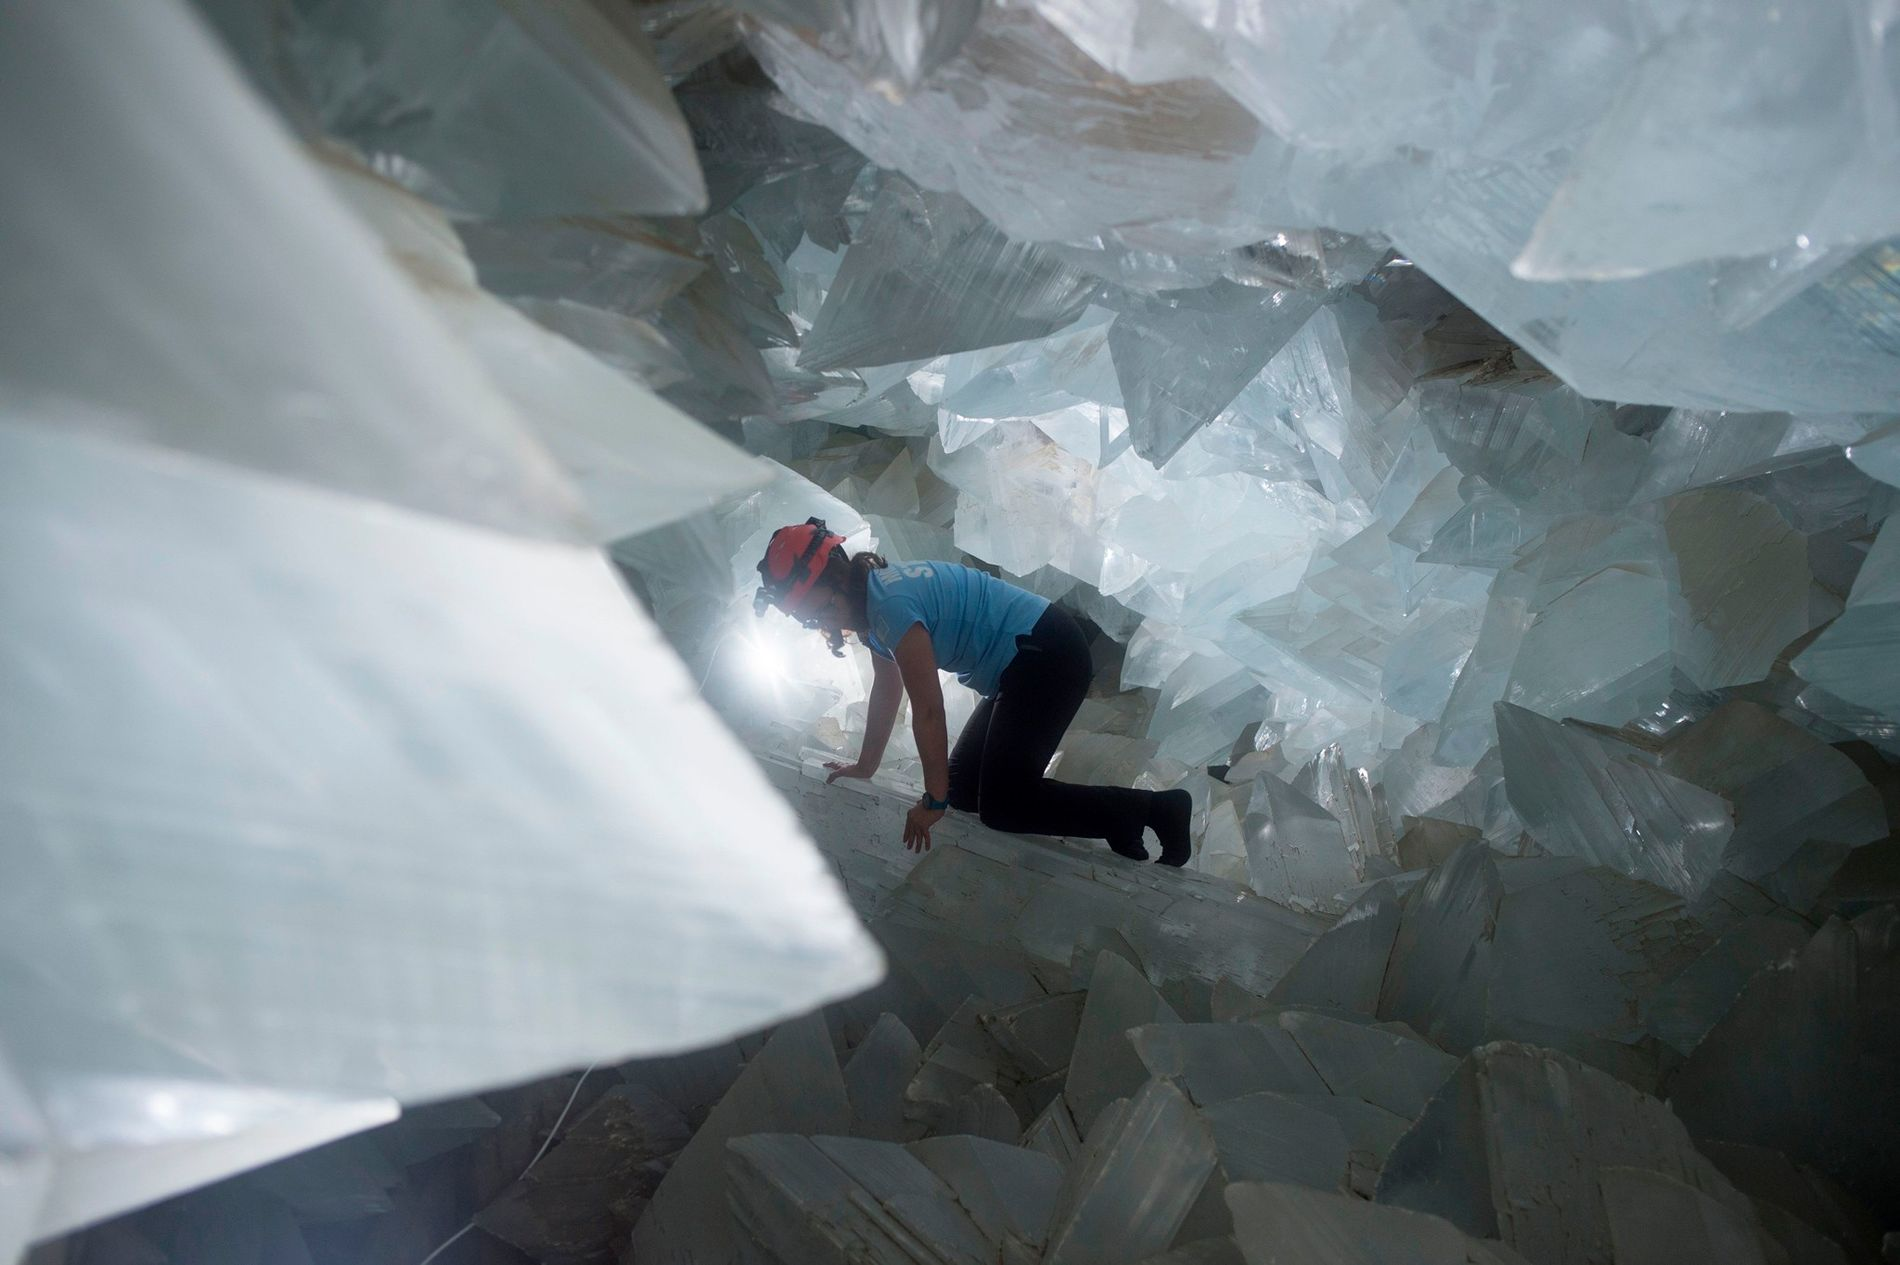 Geologist Milagros Carretero maneuvers through the gigantic Pulpí Geode in Spain in August 2019.